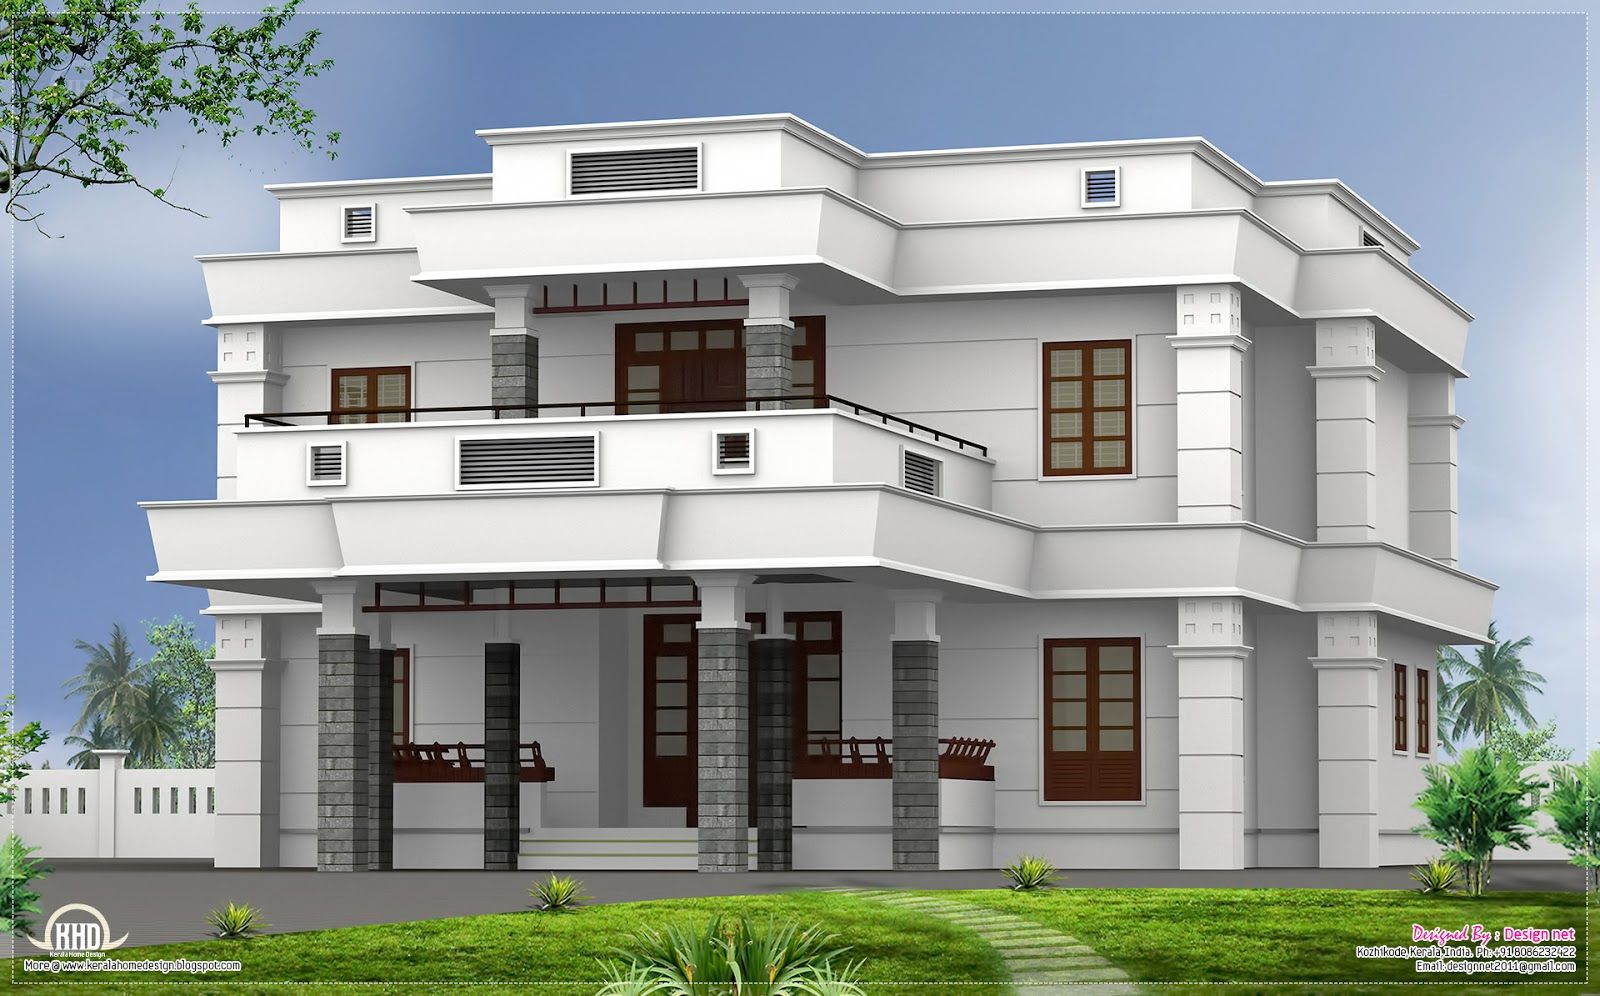 Flat roof homes designs bhk modern flat roof house for Window design for house in india